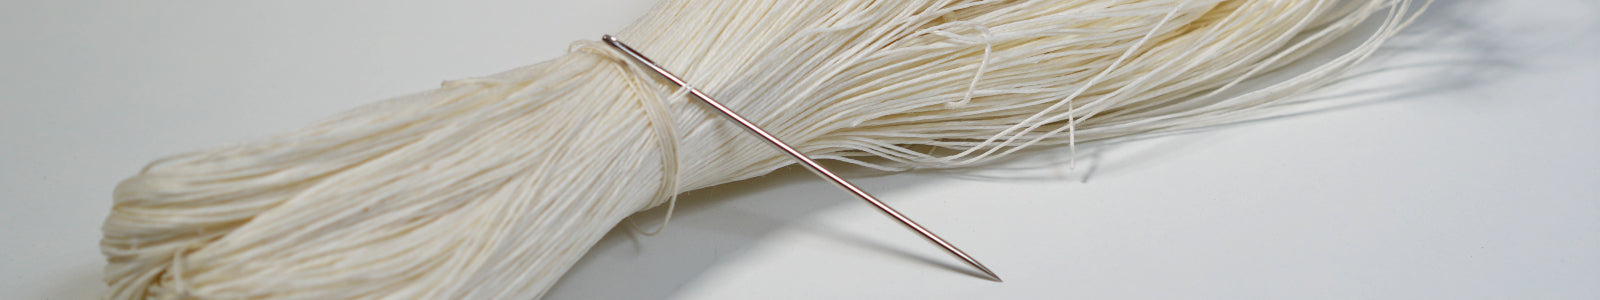 bundle of thread with needle going through